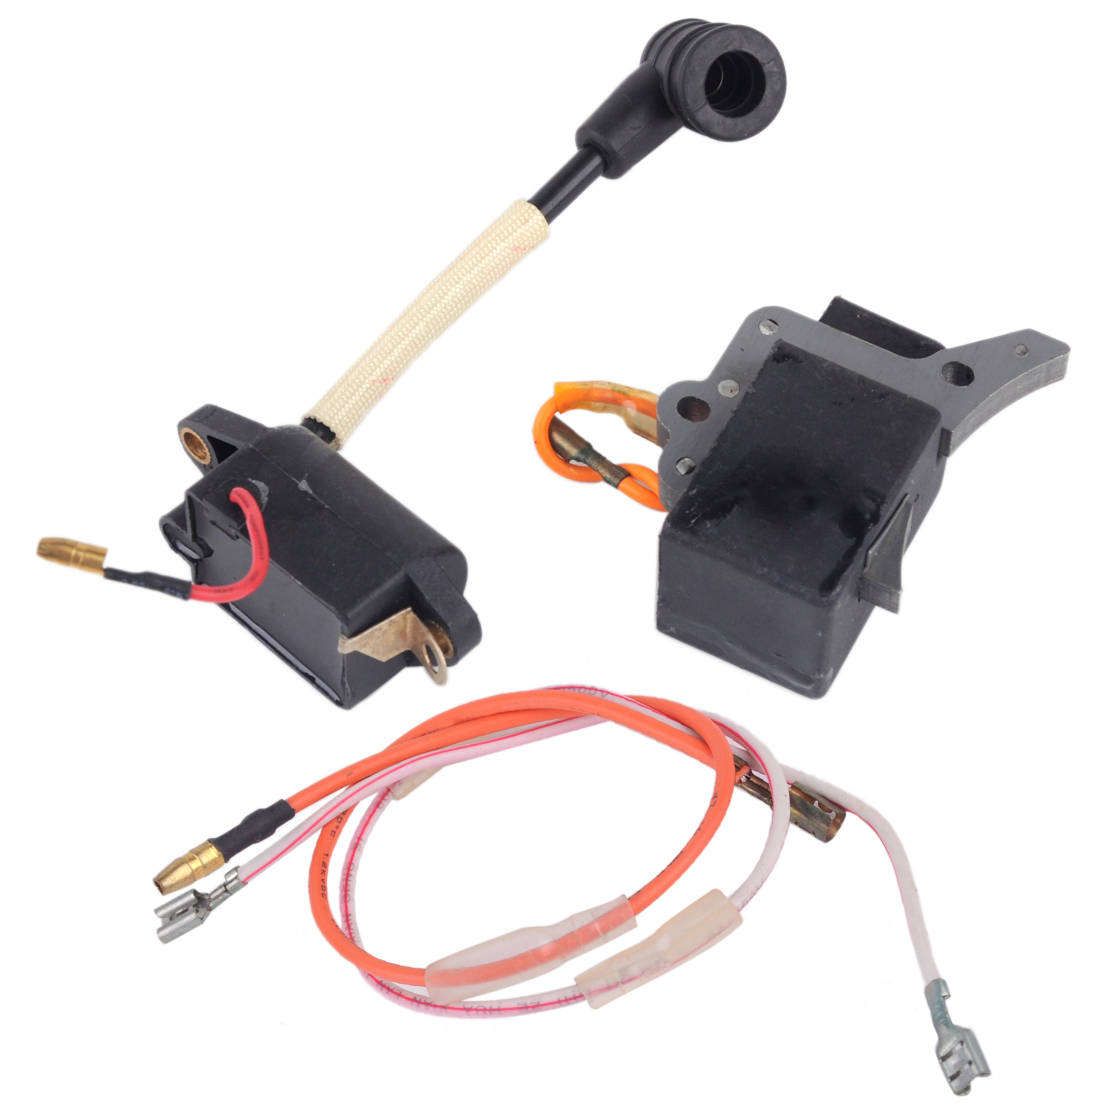 LETAOSK Chainsaw Ignition Coil Module Fit for Shindaiwa 488 # A411000460 ReplacementAccessories kangfeng синий цвет